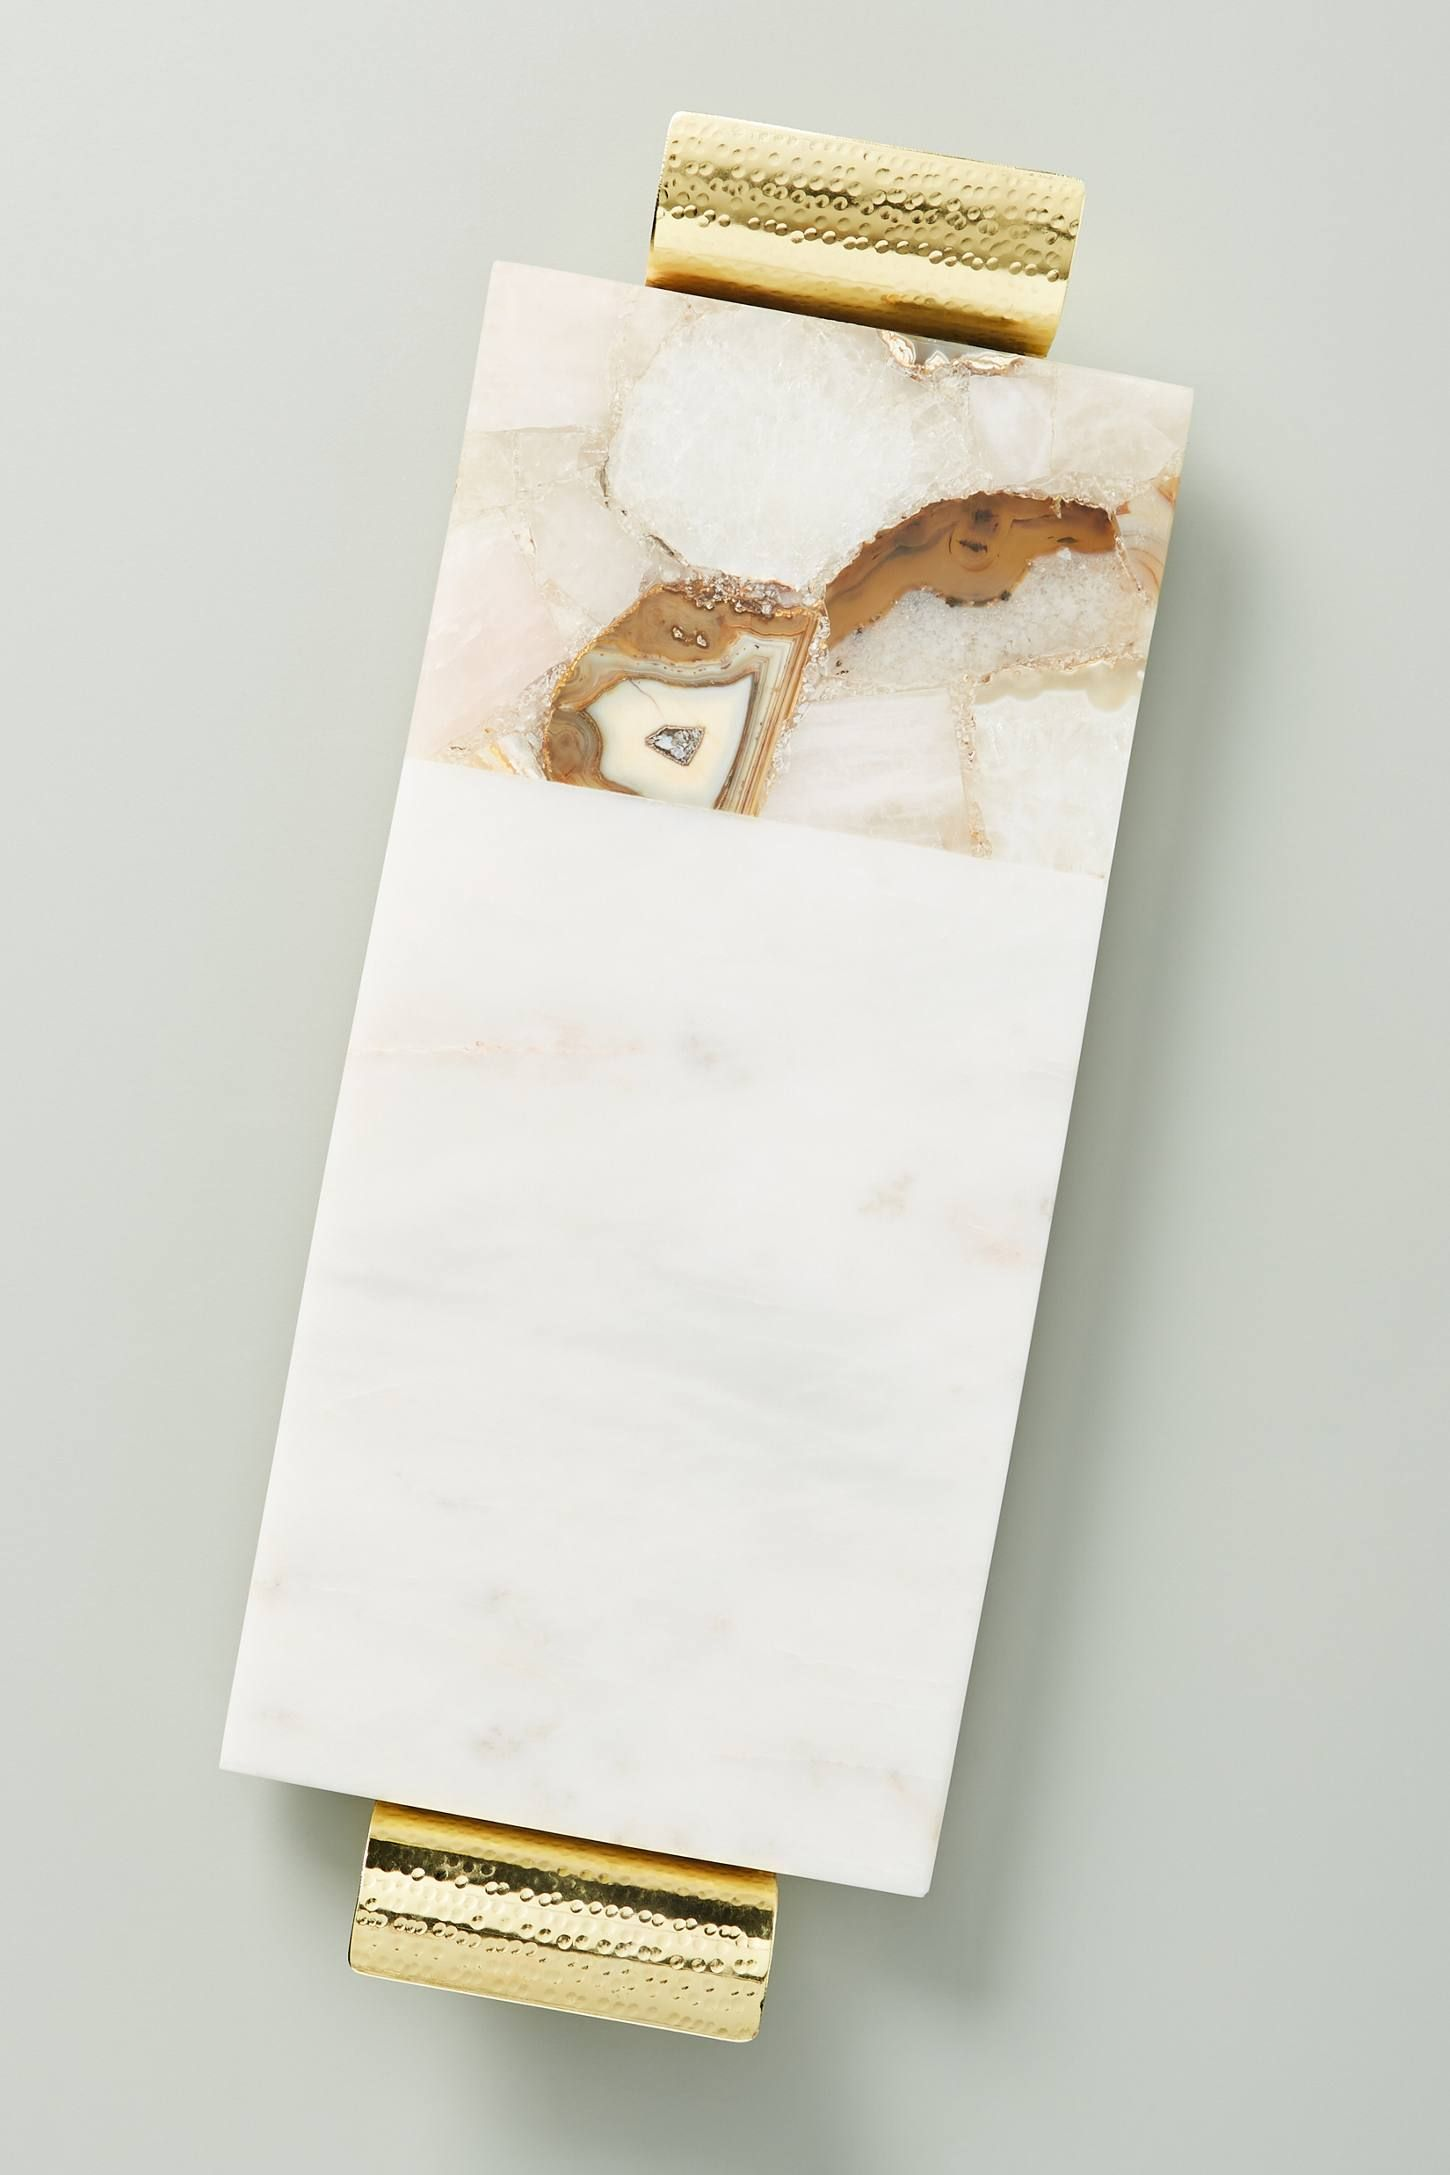 Cute Christmas Gifts For Bff.Morgan Agate Cheese Board